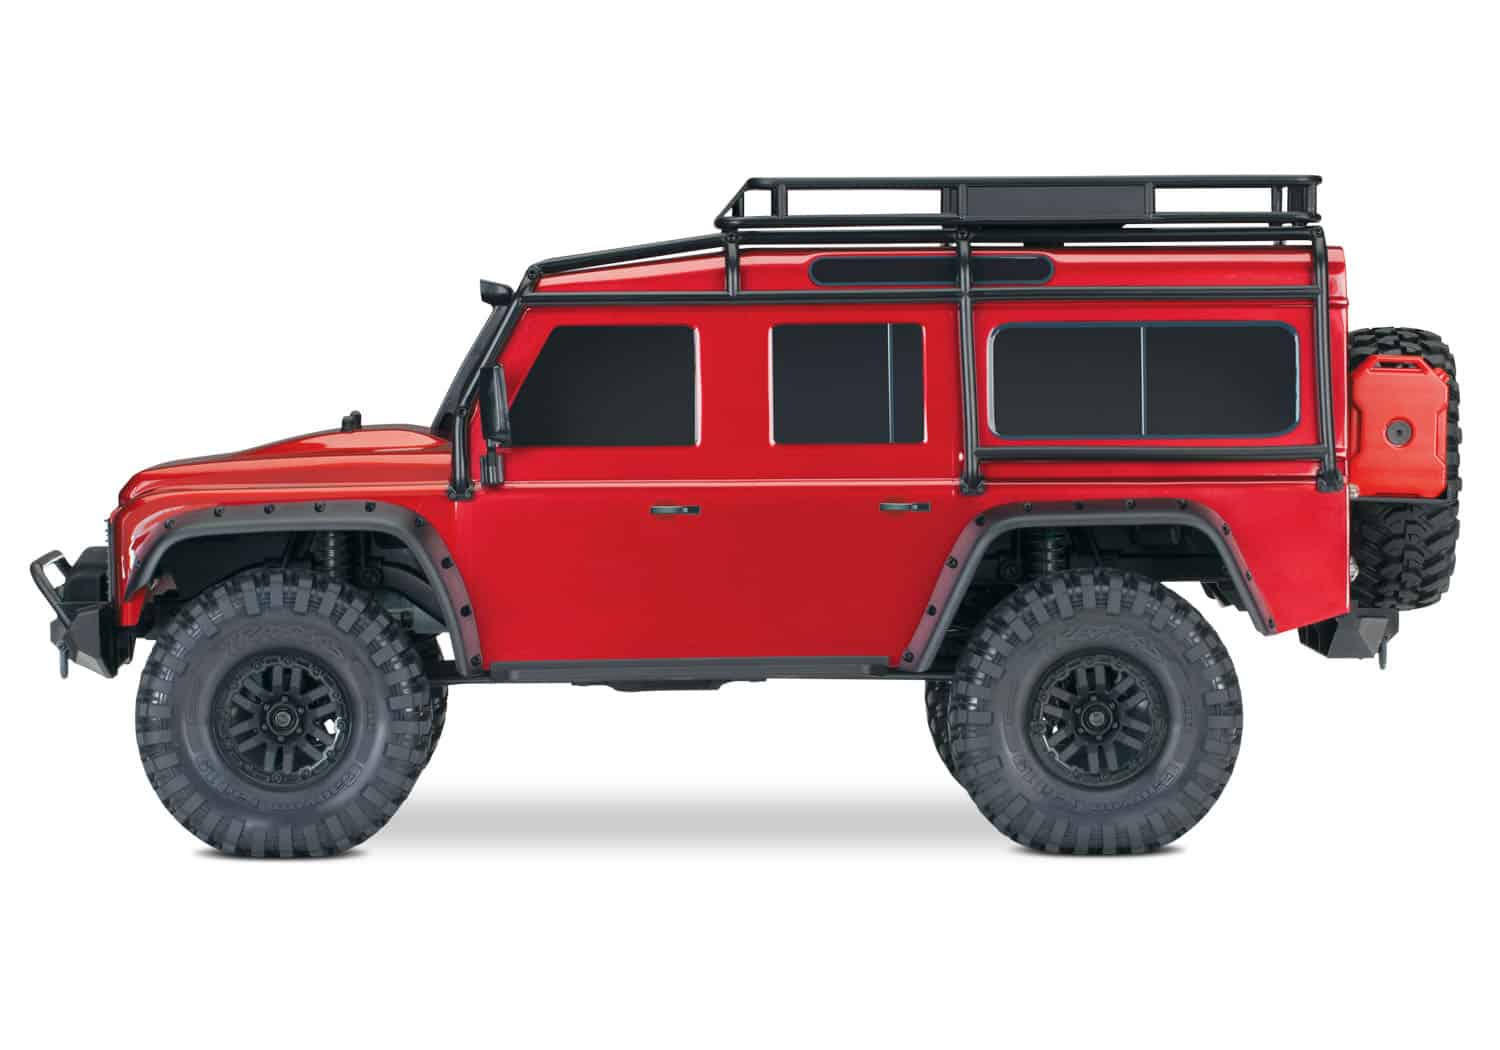 Traxxas Trx4 Land Rover Defender 1 10 Crawler Red